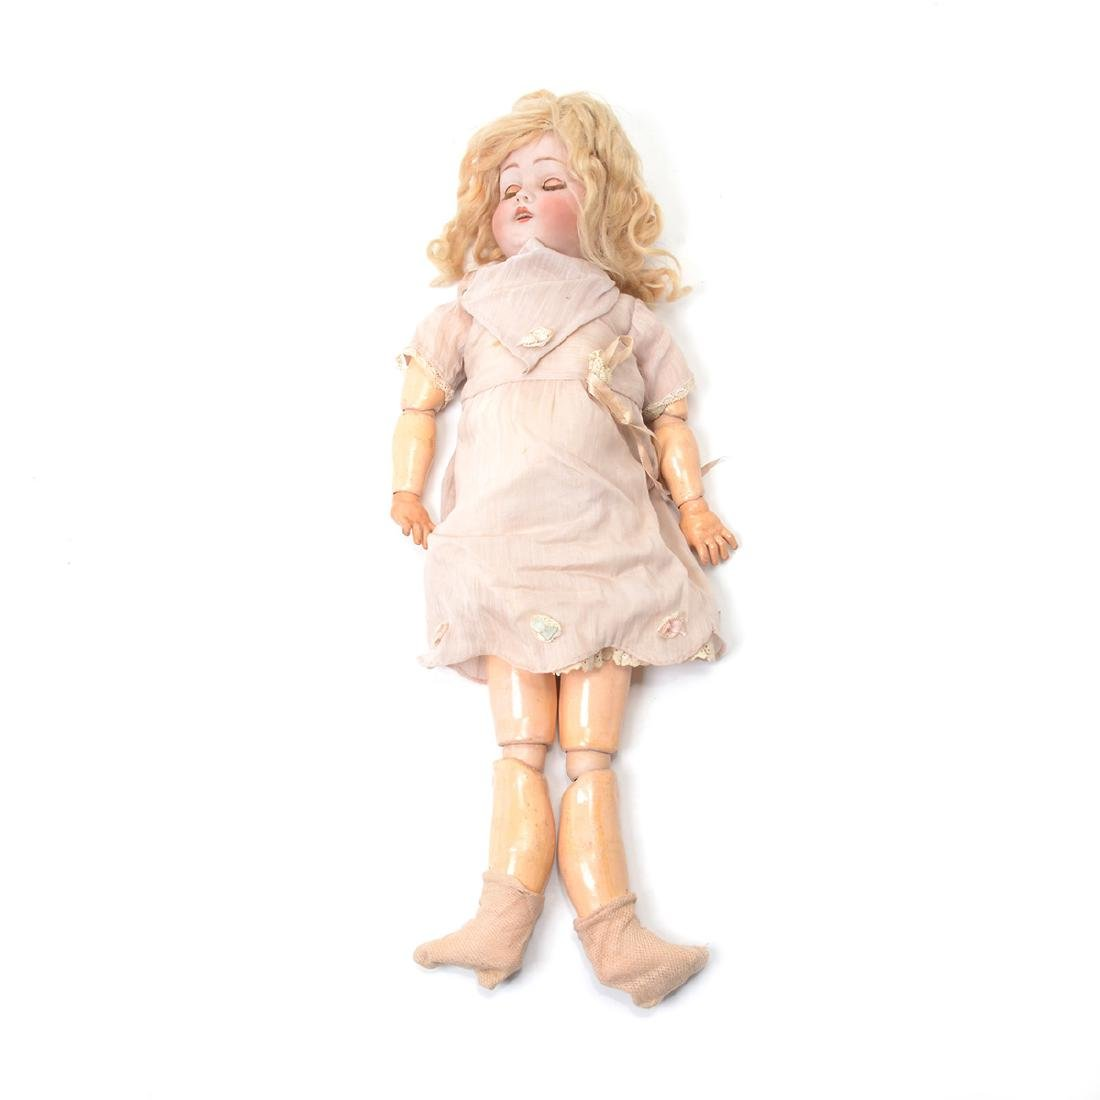 Bisque Head Doll with Doll Trunk - 2